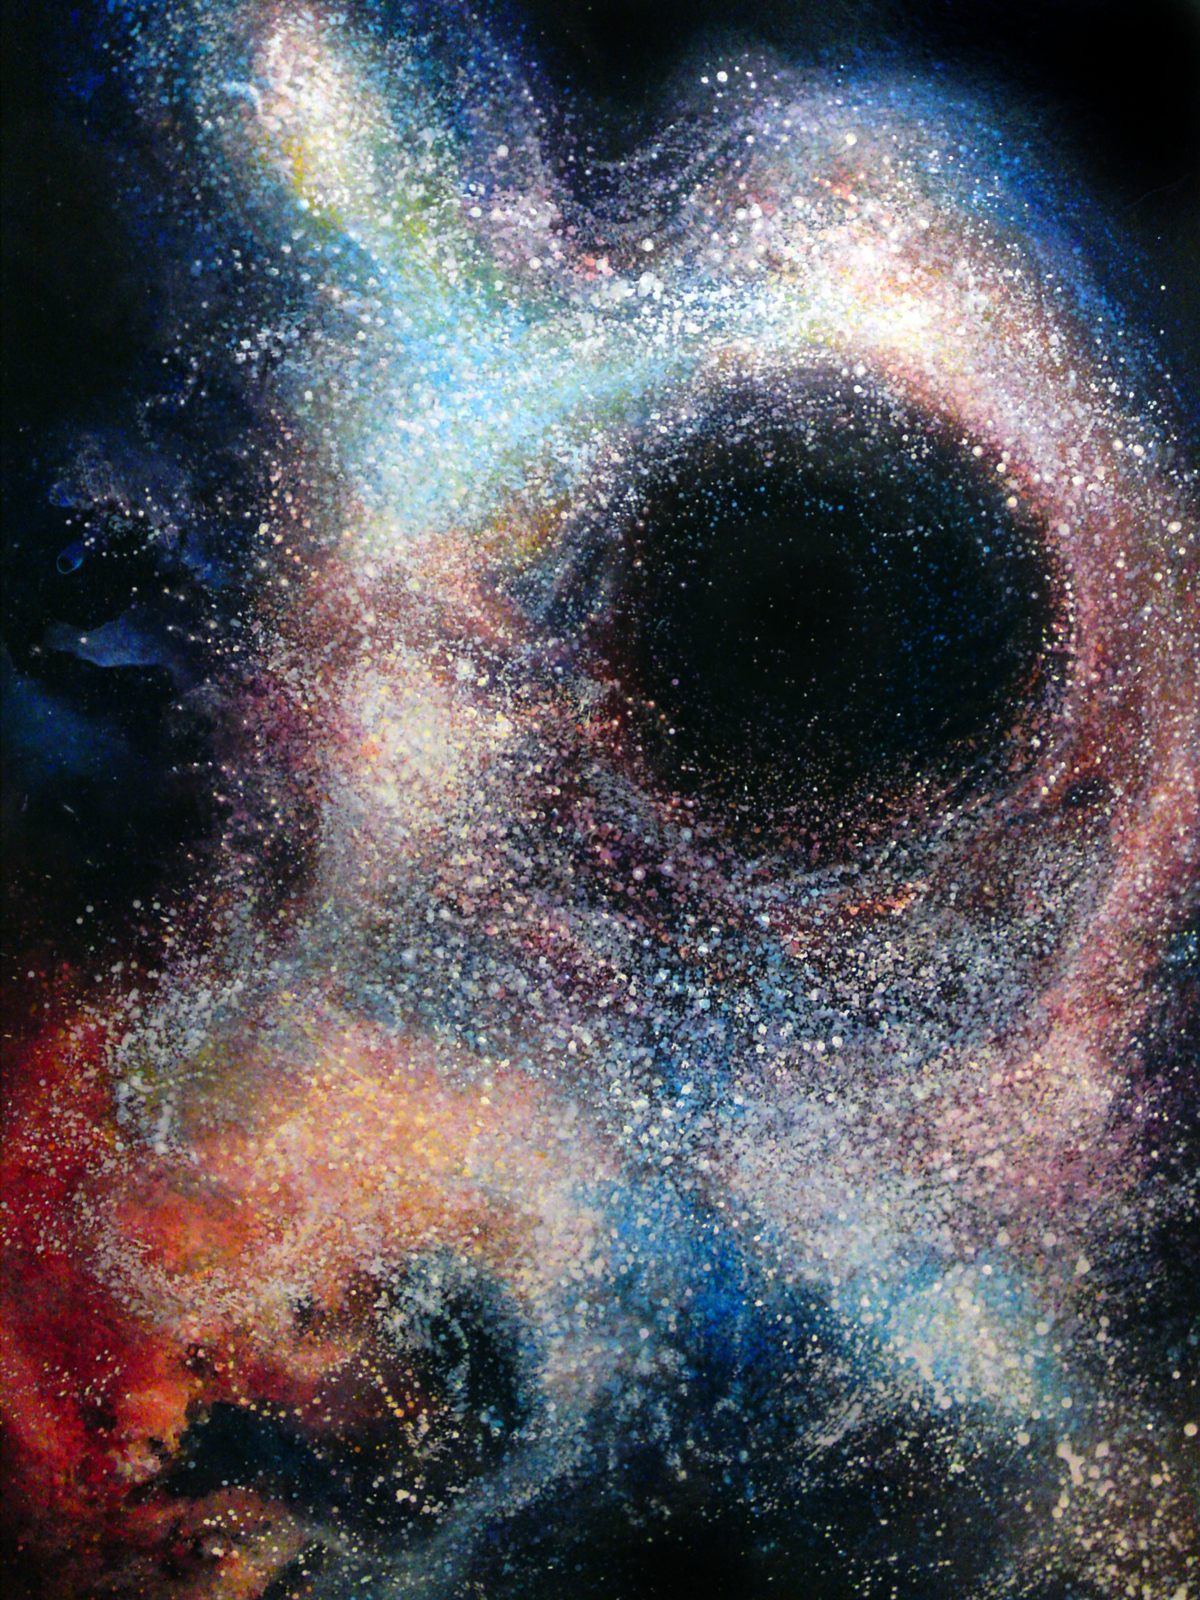 Black Hole Painting - Pics about space